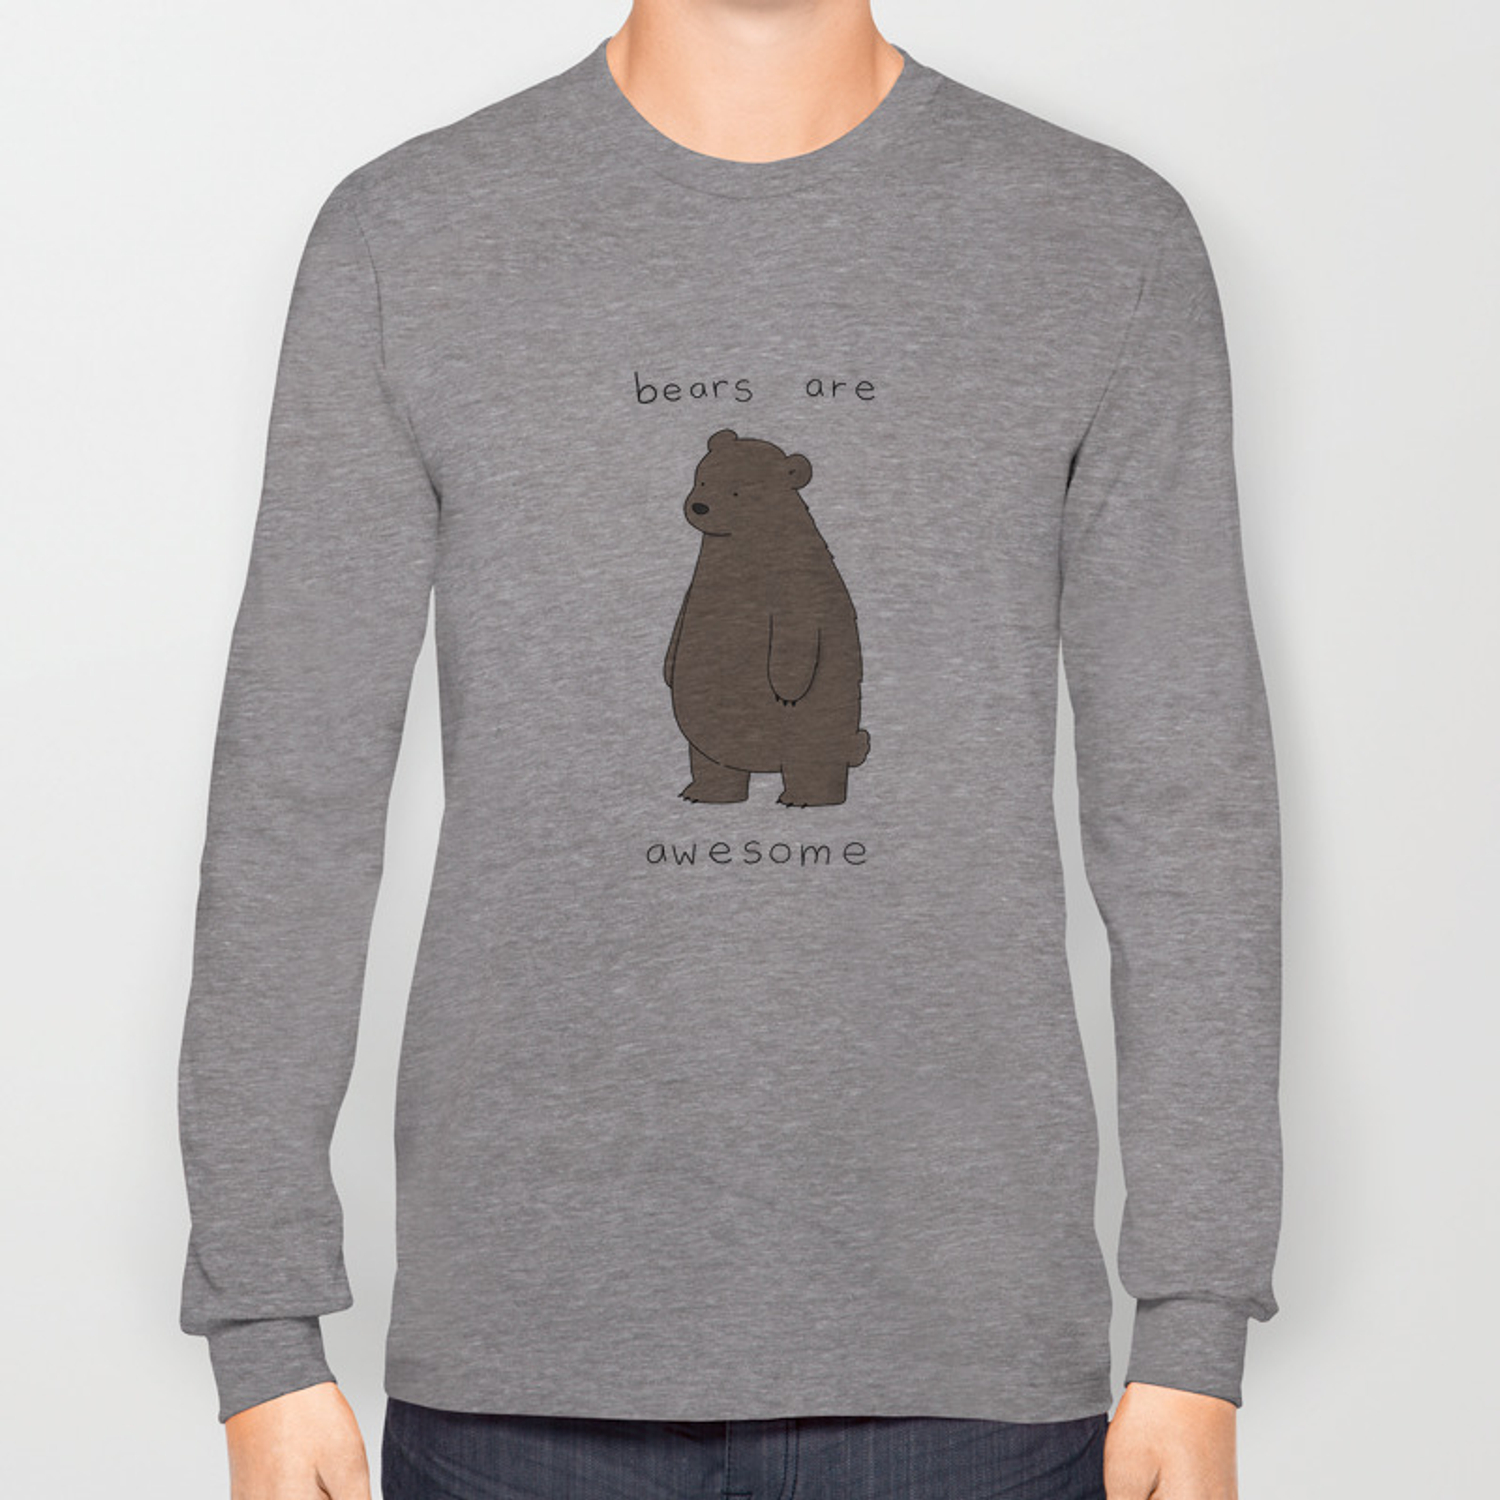 410e46b99eb1 Bears are Awesome Long Sleeve T-shirt by lizclimo | Society6